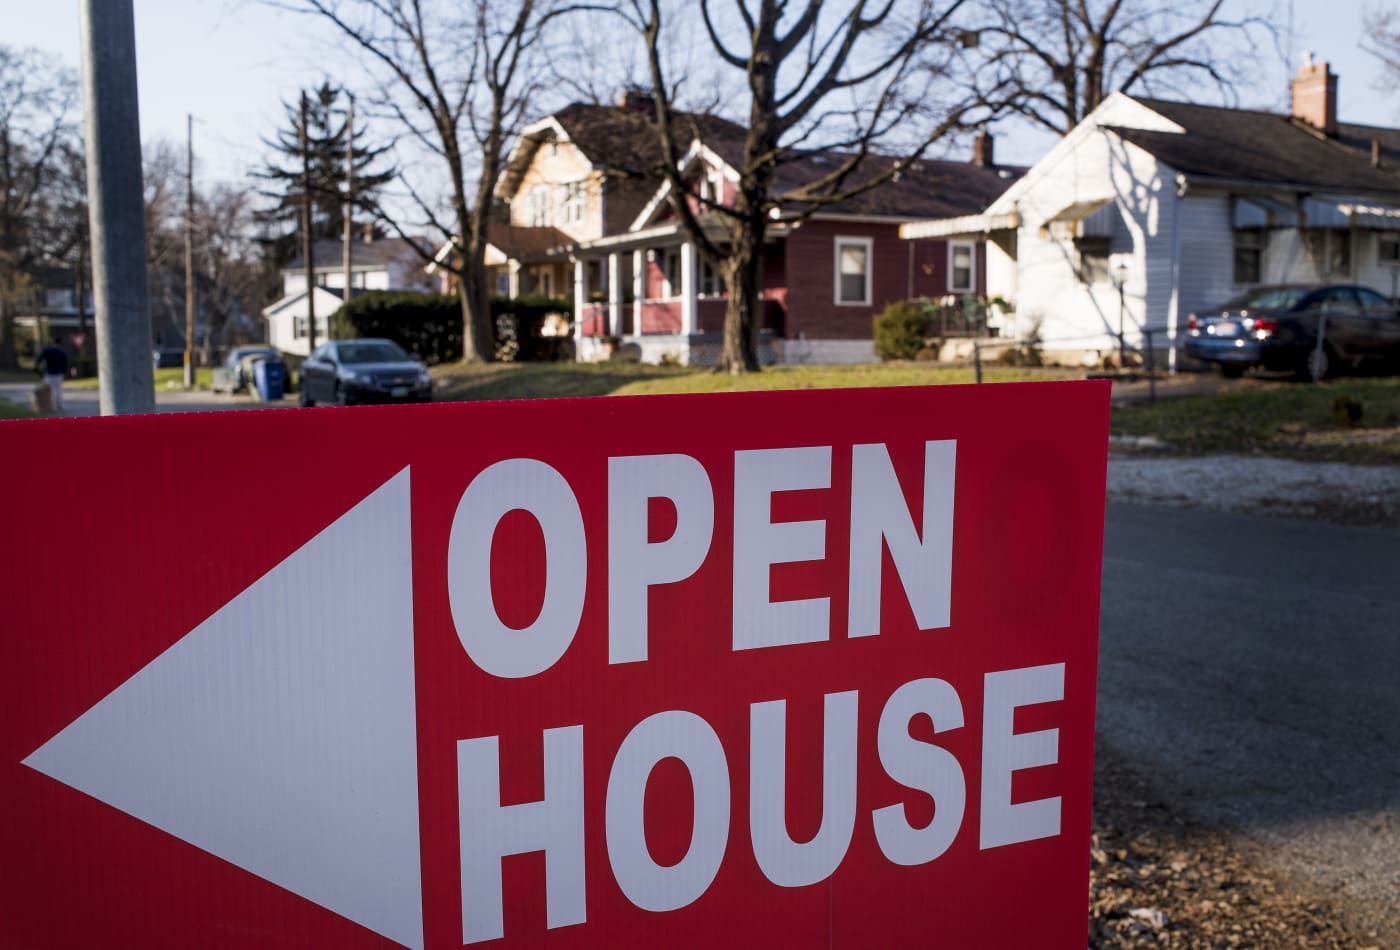 Mortgage rates fall further, as buyers rush into the first open houses of 2020